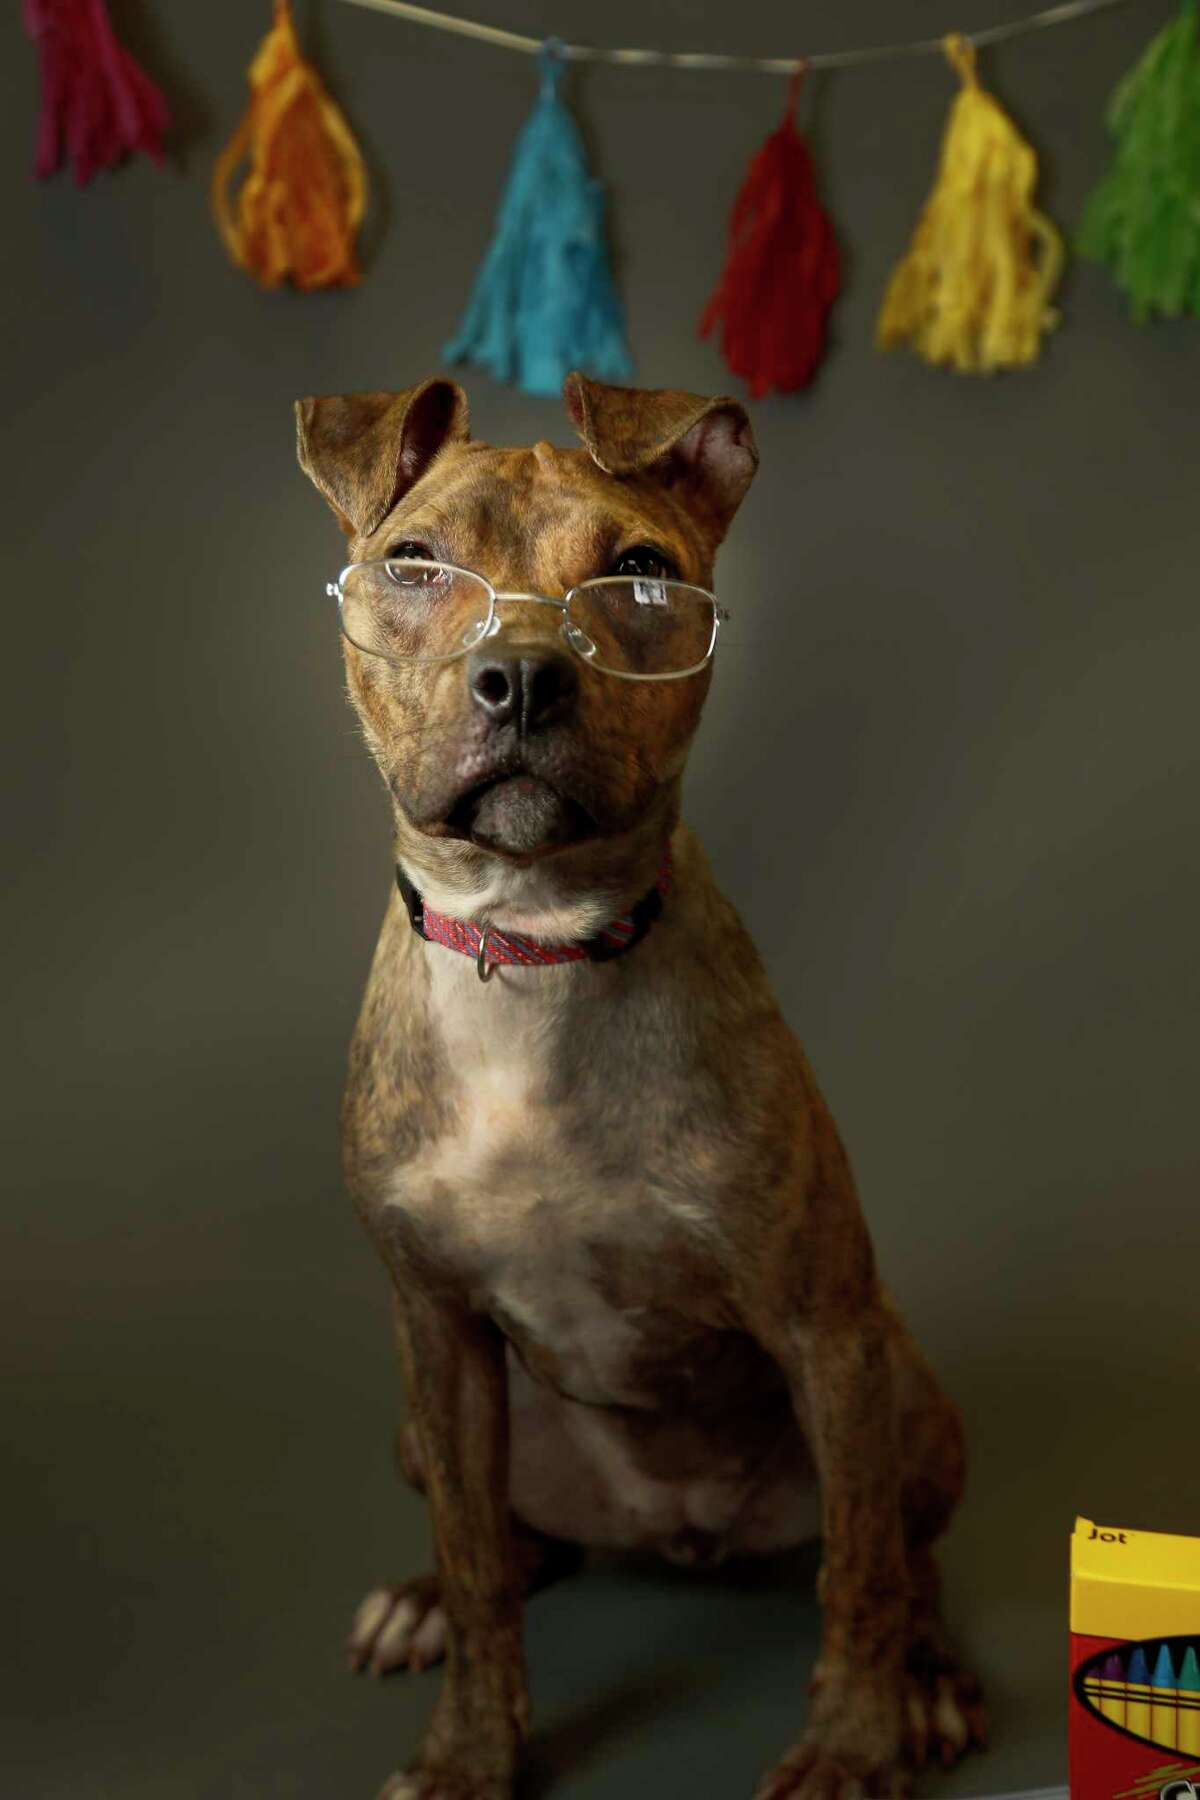 UNKNOWN: (Animal ID: A515621) A 2-year-old female, brindle pit bull mix is available for adoption at the Harris County Animal Shelter, Tuesday, August 28, 2018, in Houston. Adopting a shelter pet, not only teaches children important character-building lessons, but it is also a great way to provide a child with a